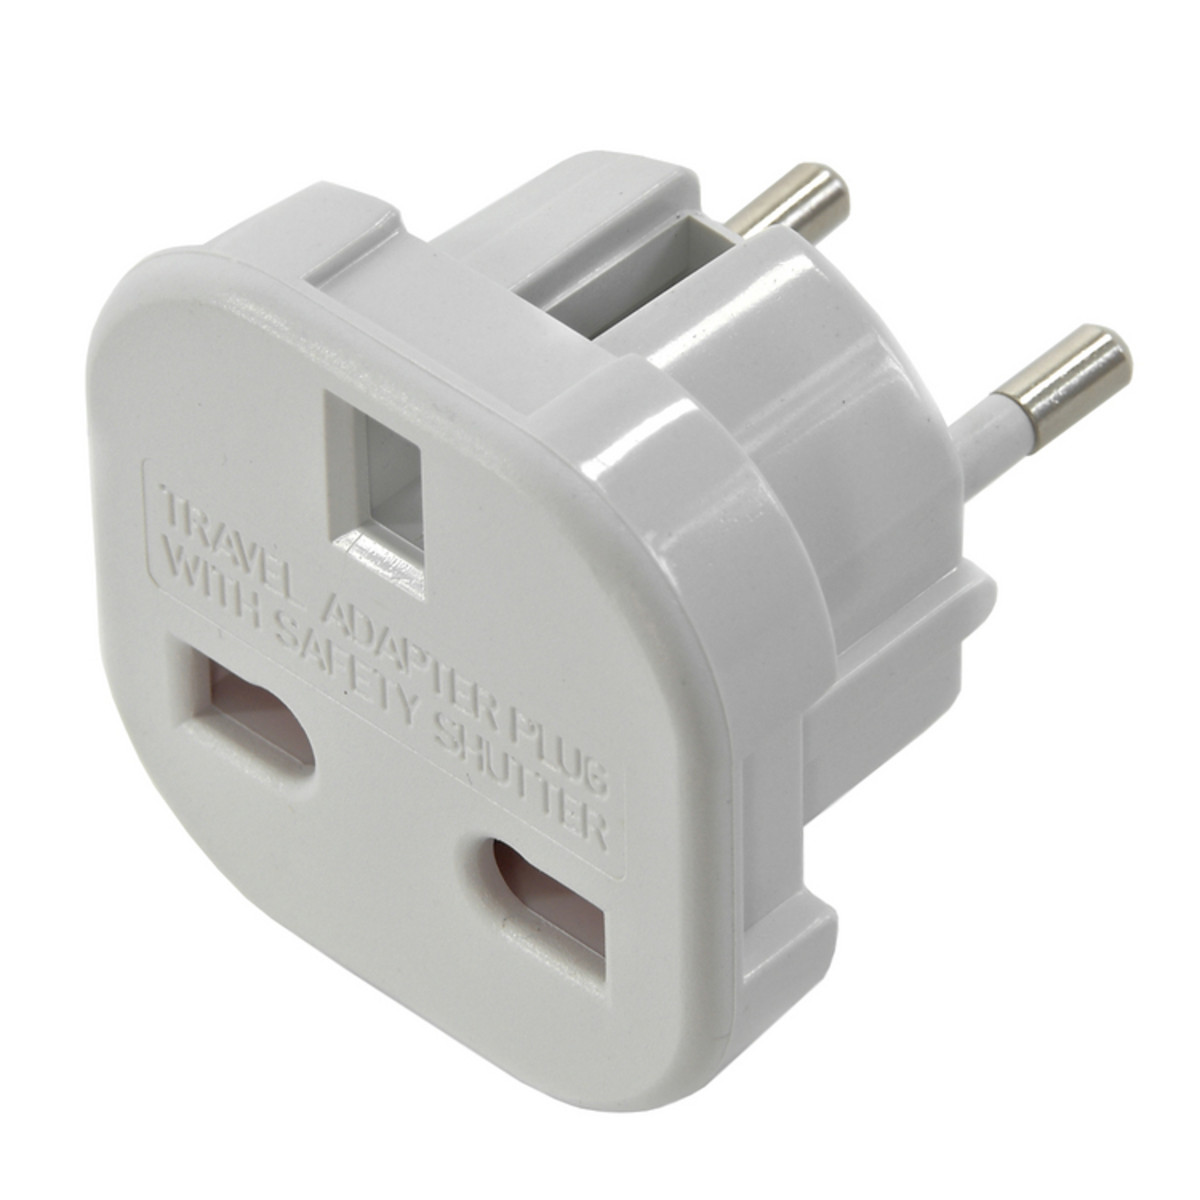 Uk Eu Power Adaptor By Gear4music At Gear4music